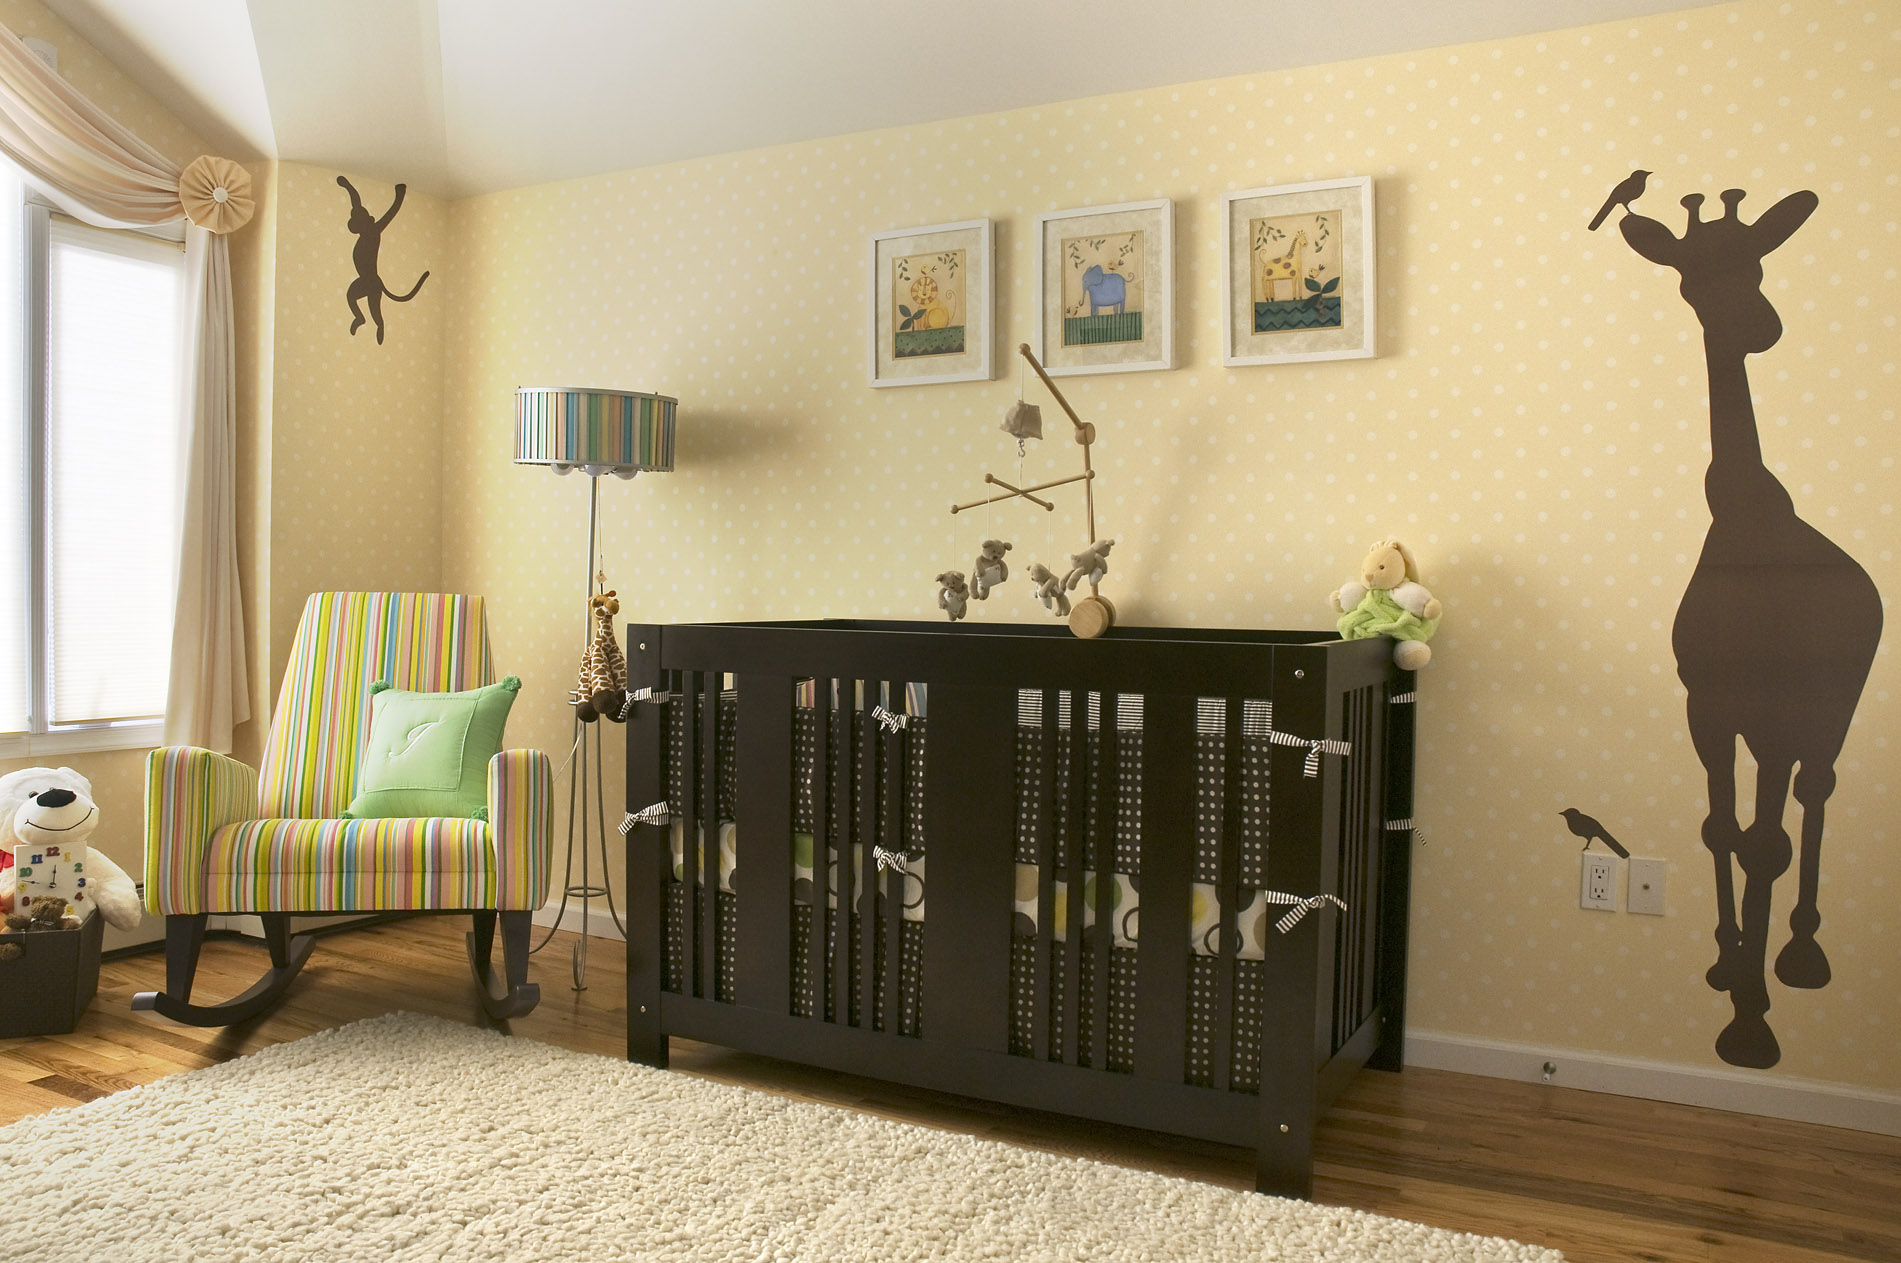 Lullaby Land - Nursery Decorating Ideas - Decorating Den Interiors